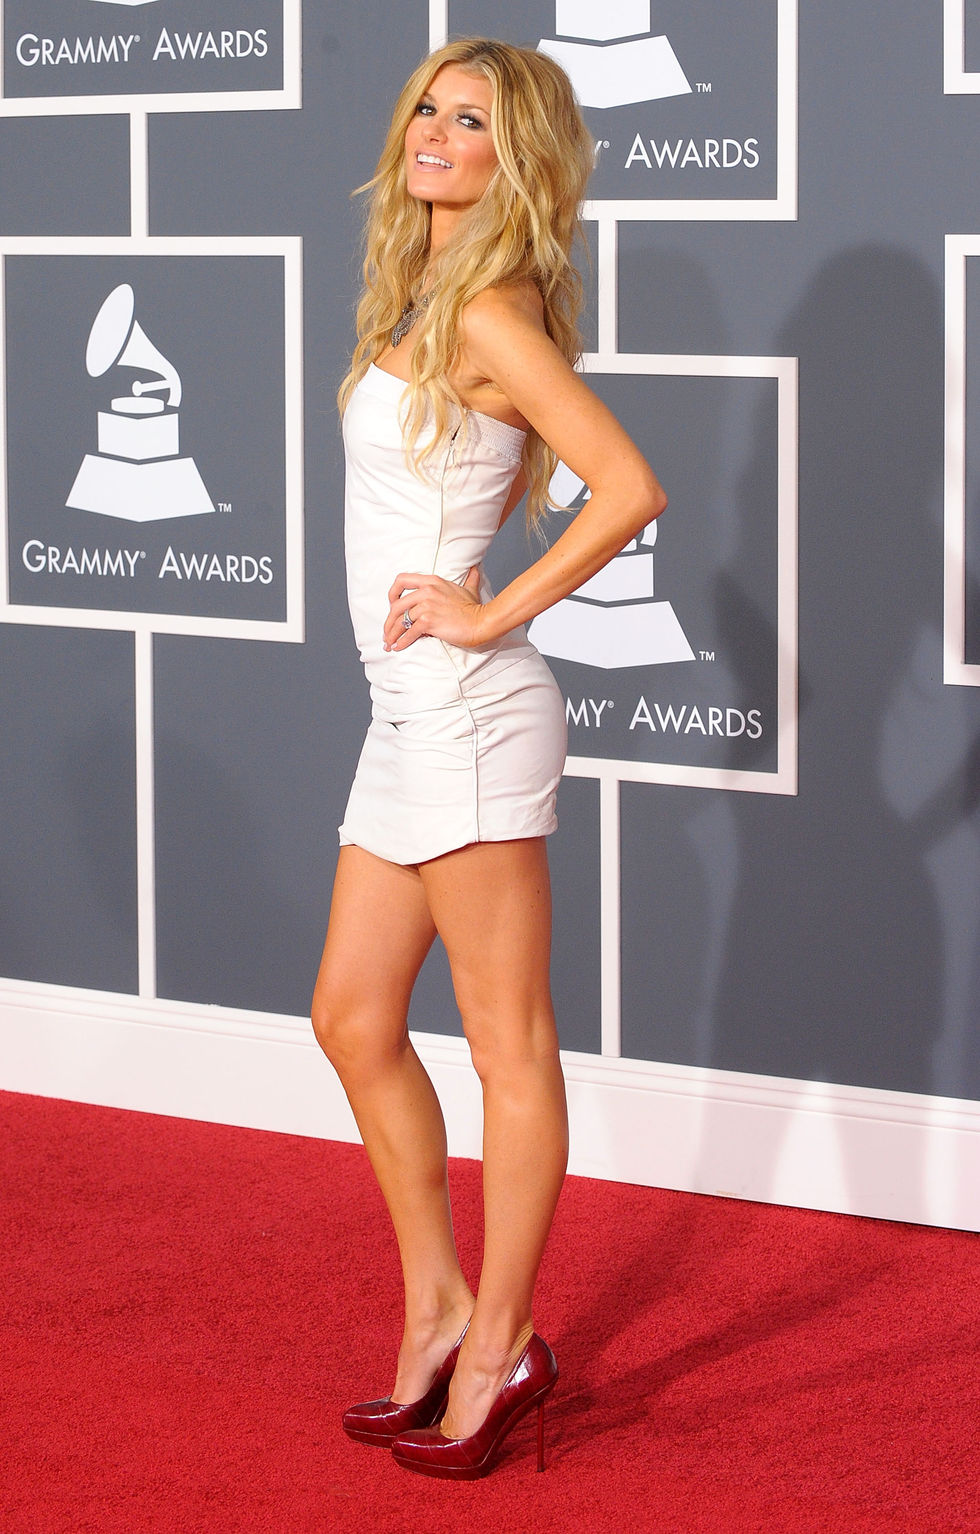 marisa-miller-52nd-annual-grammy-awards-in-los-angeles-13